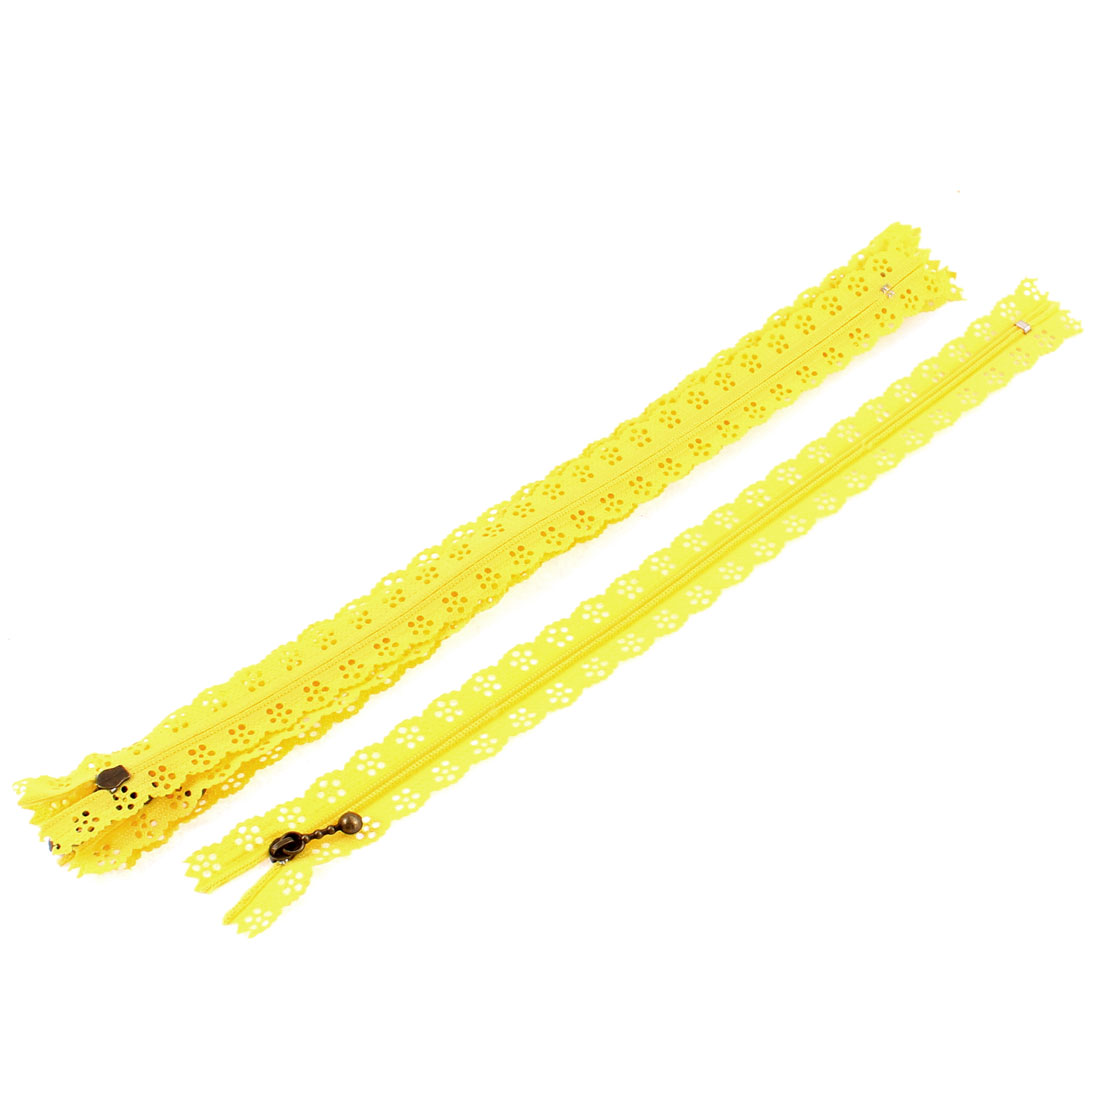 5 Pcs Yellow Lace Edged Zip Closed End Zipper 12-inch Long